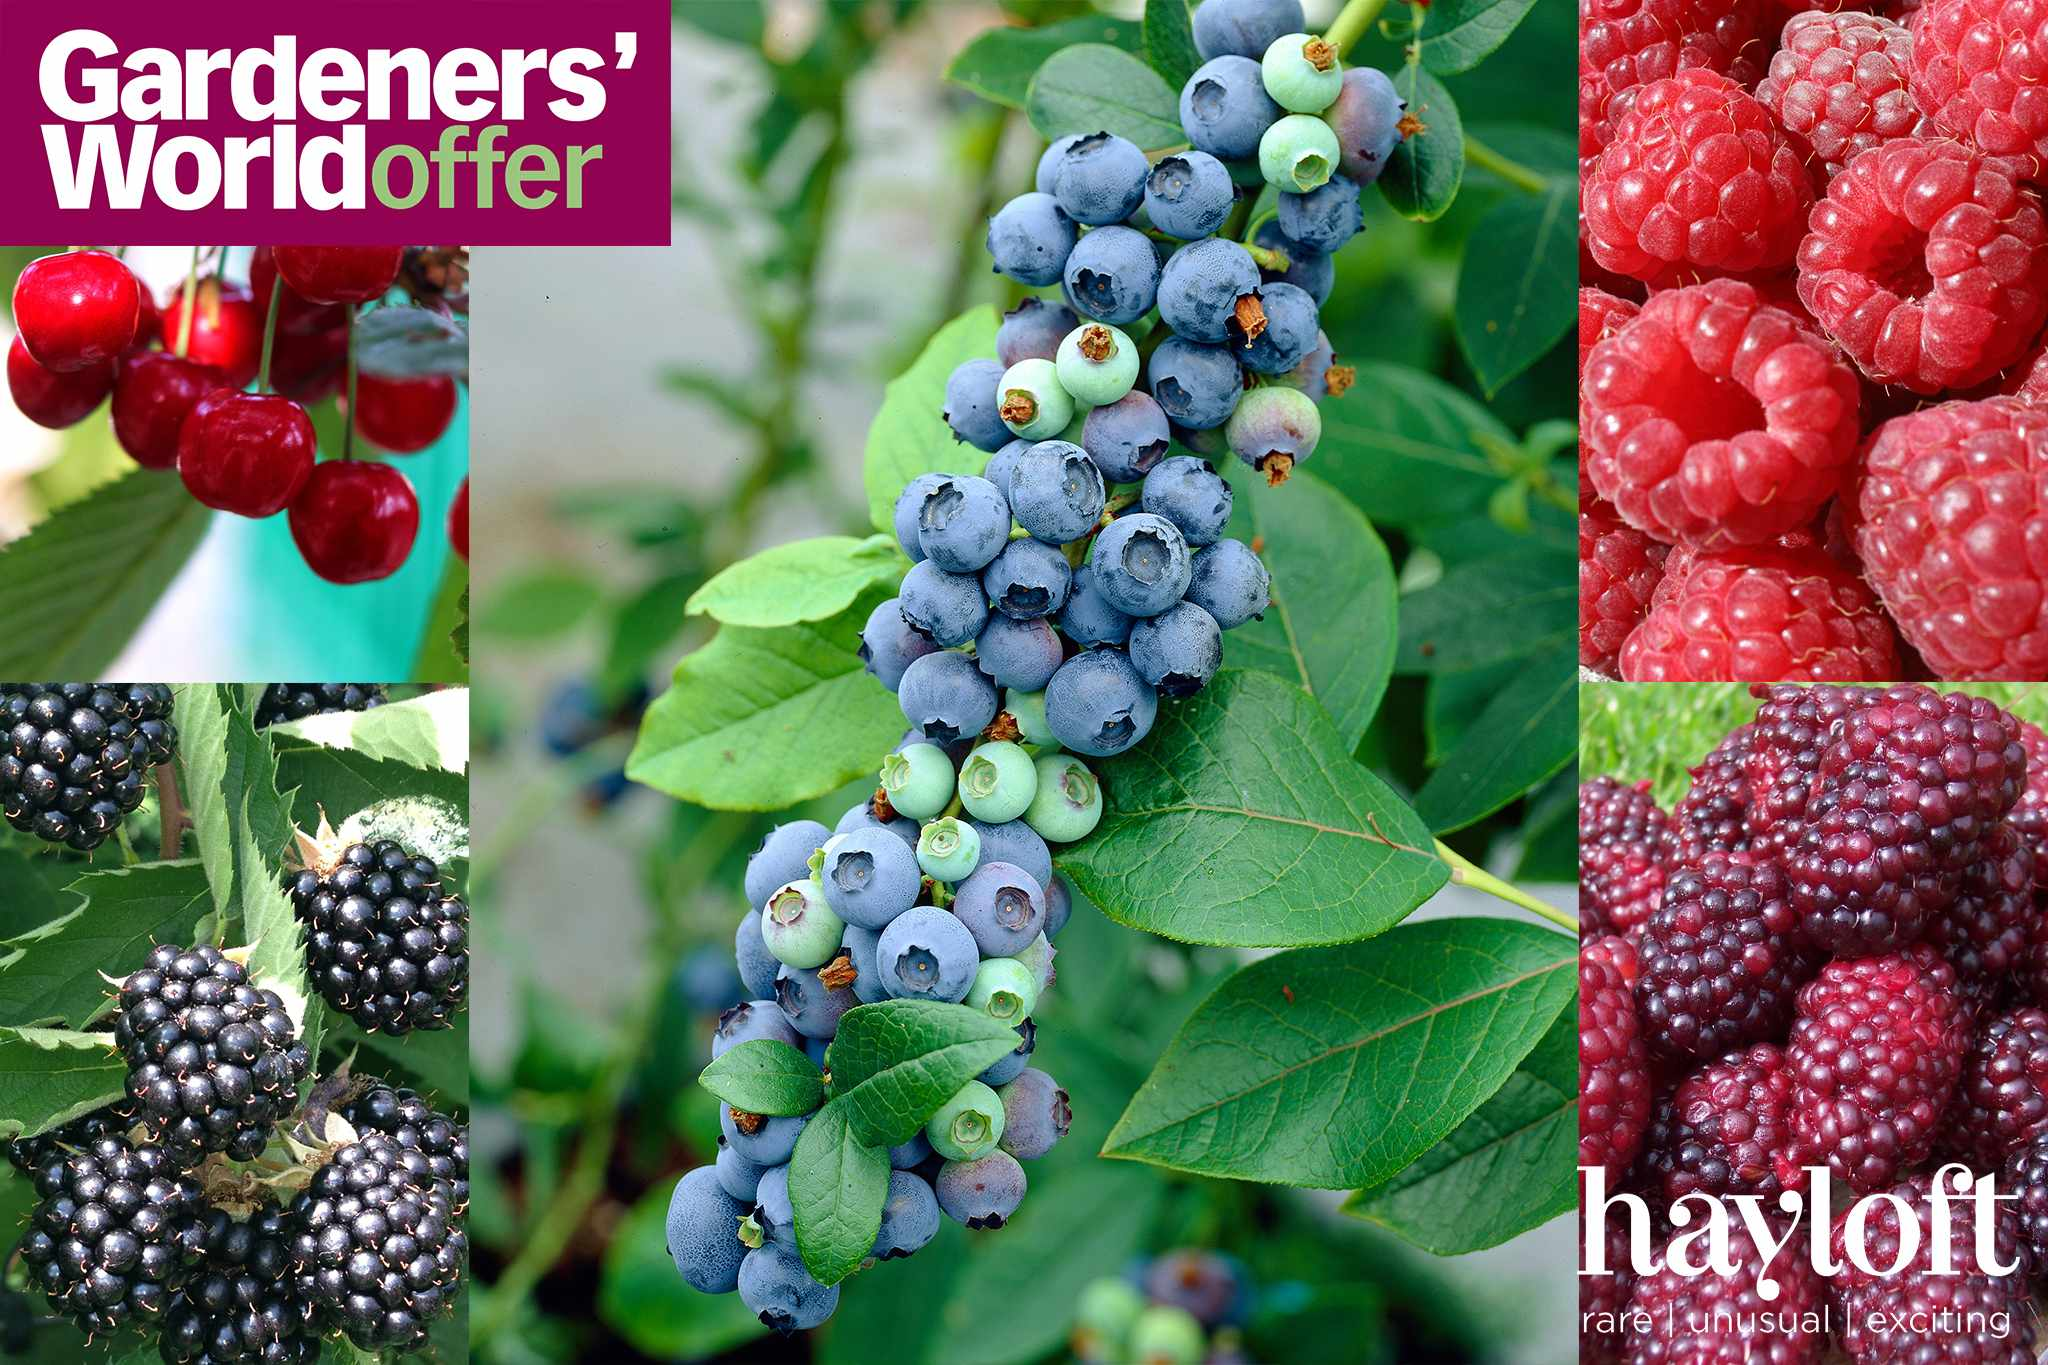 Free blueberry plants when you pay postage from Hayloft